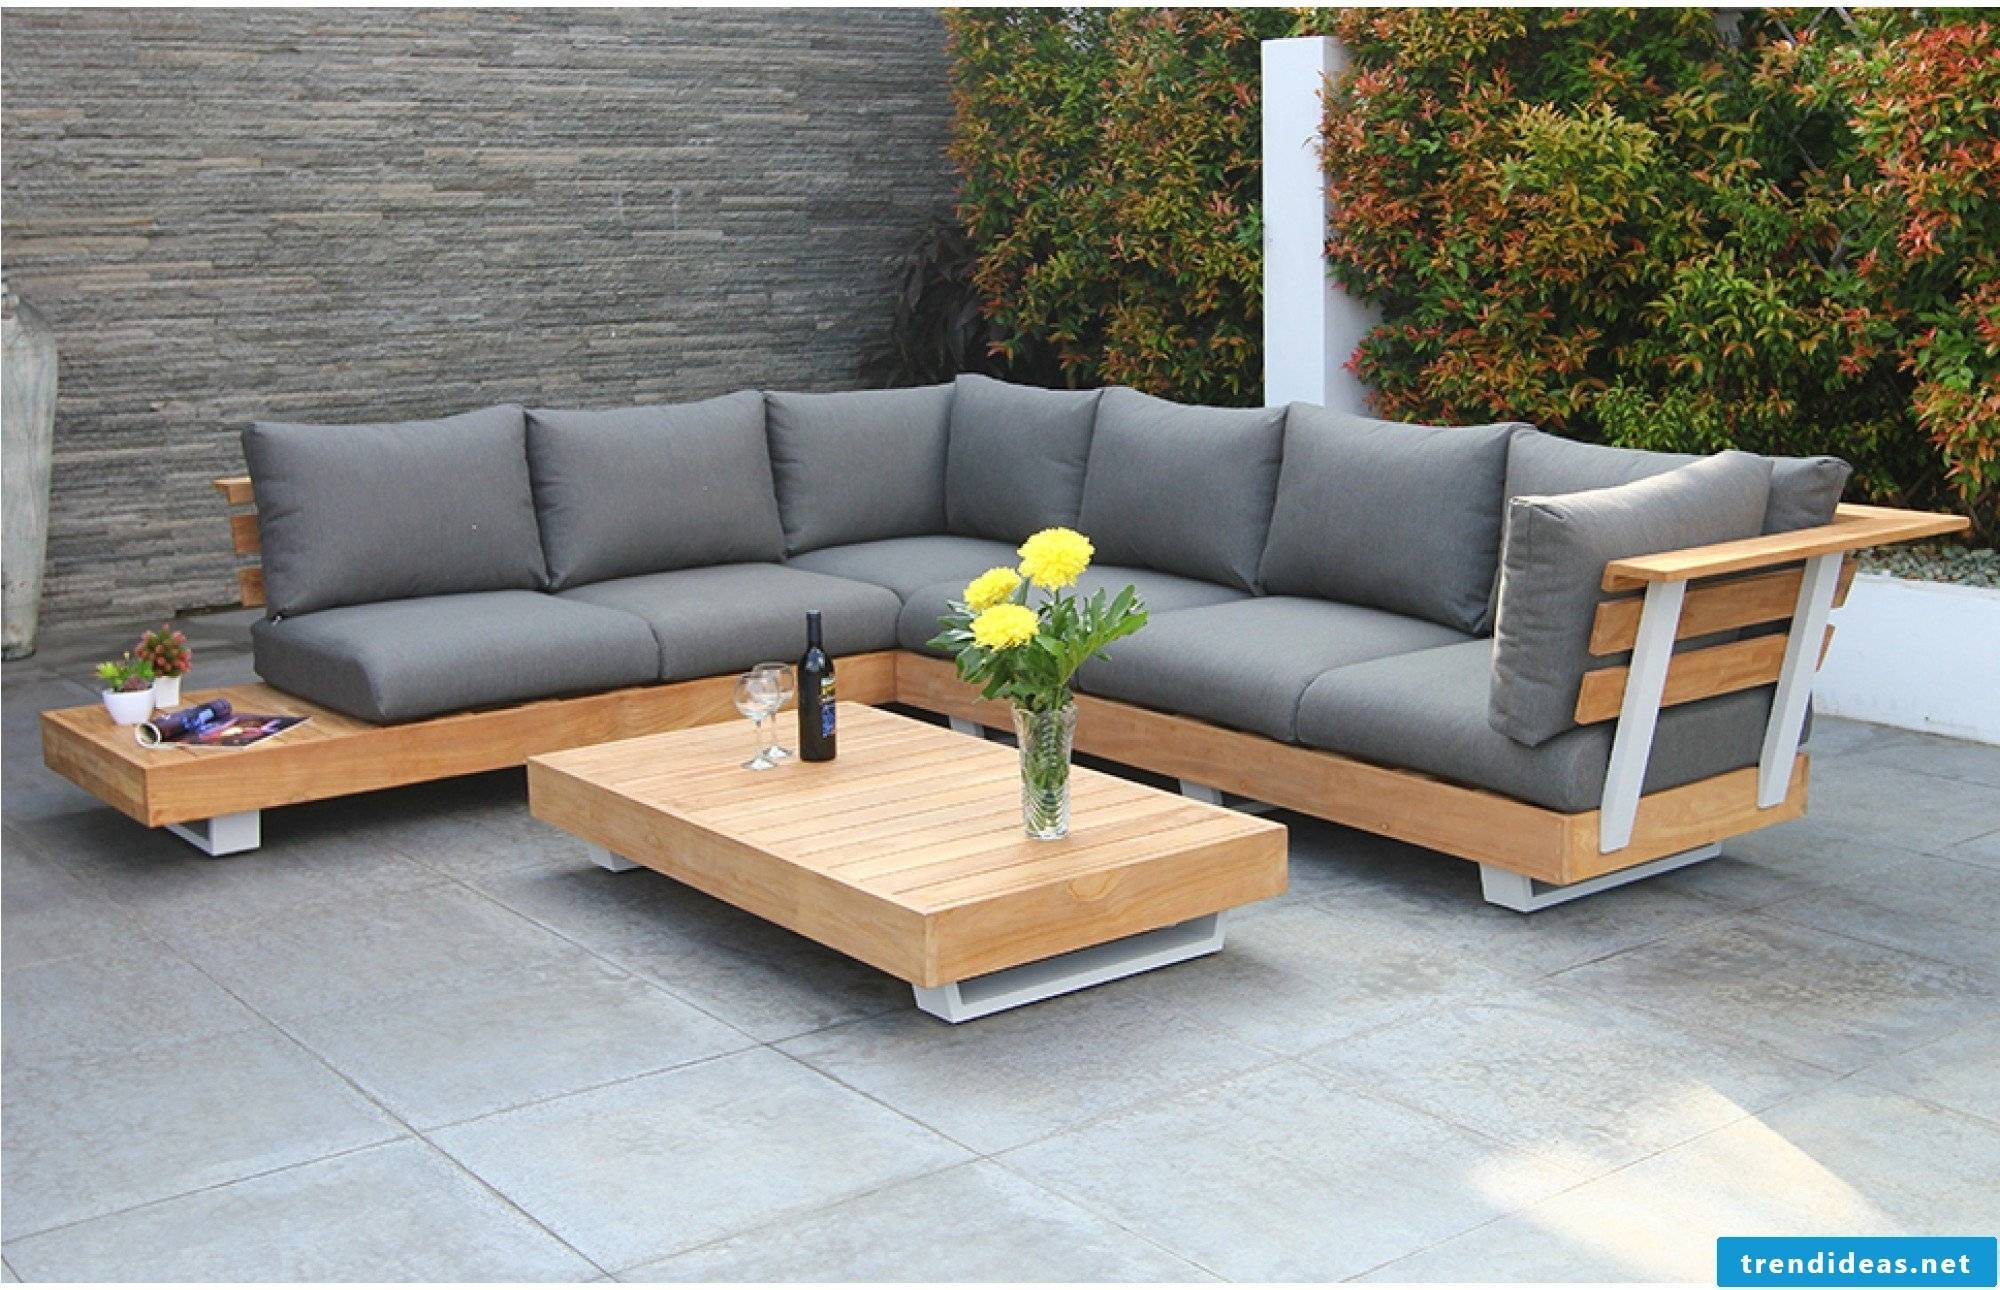 chic garden lounge for the relax corner in the ridges